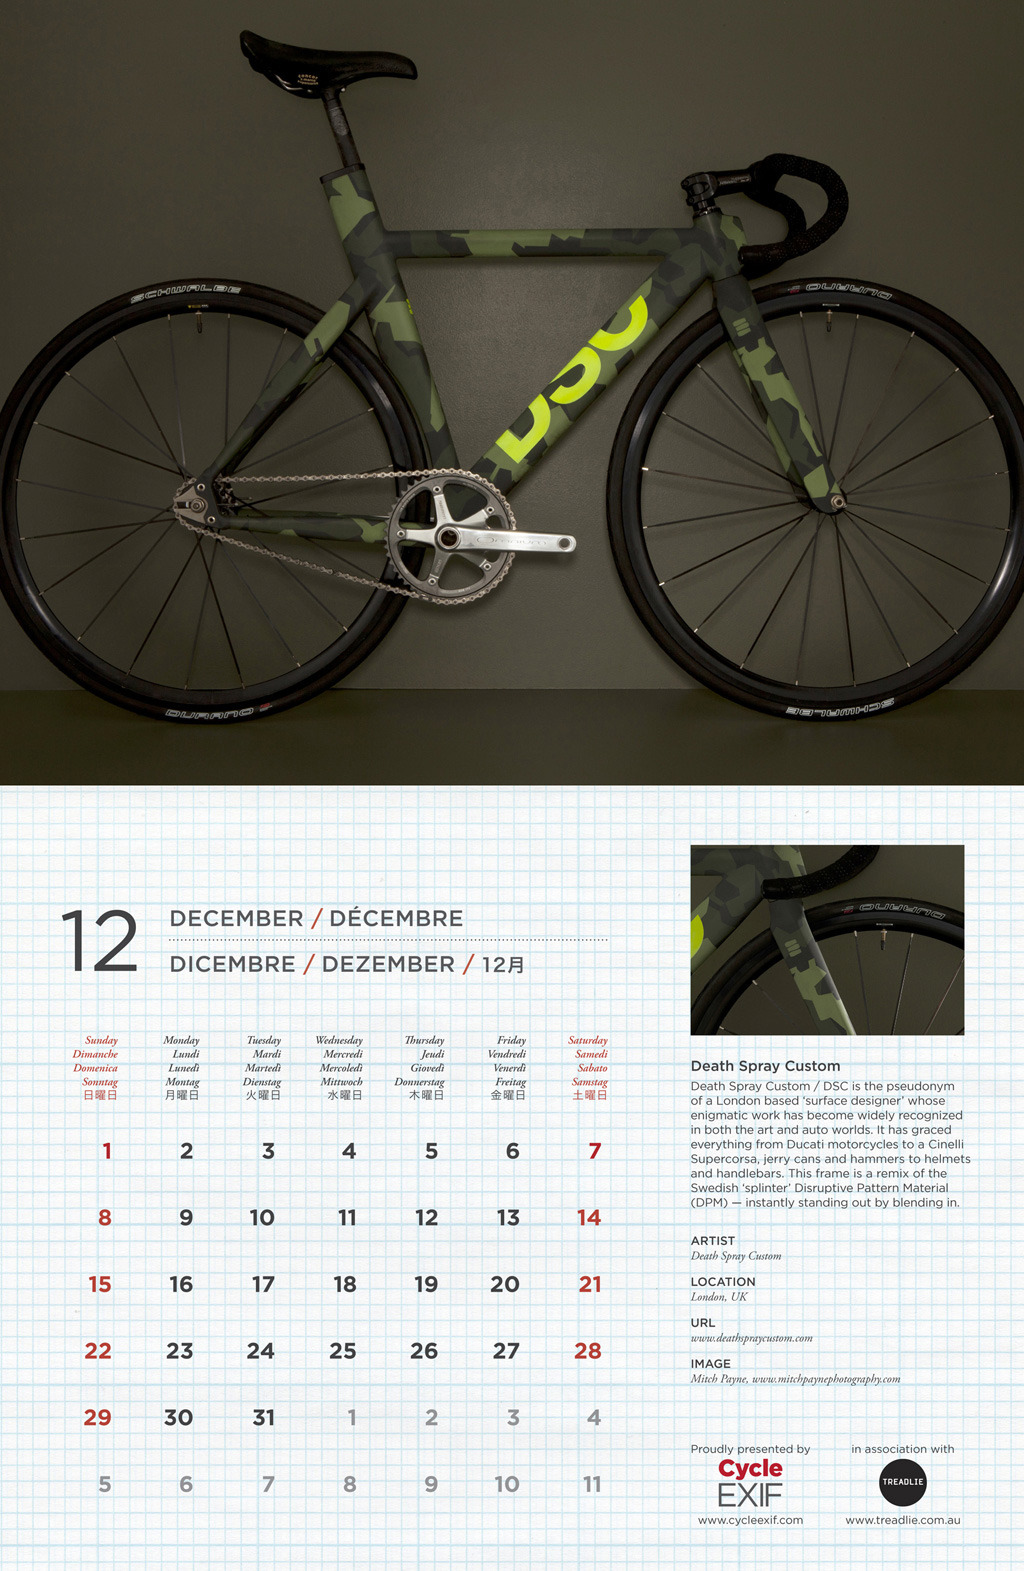 DSC is amongst the incredible bicycles on display in Cycle EXIF's 2013 calendar. December looks like a good month. Pick up a copy here http://www.magcloud.com/browse/issue/464799